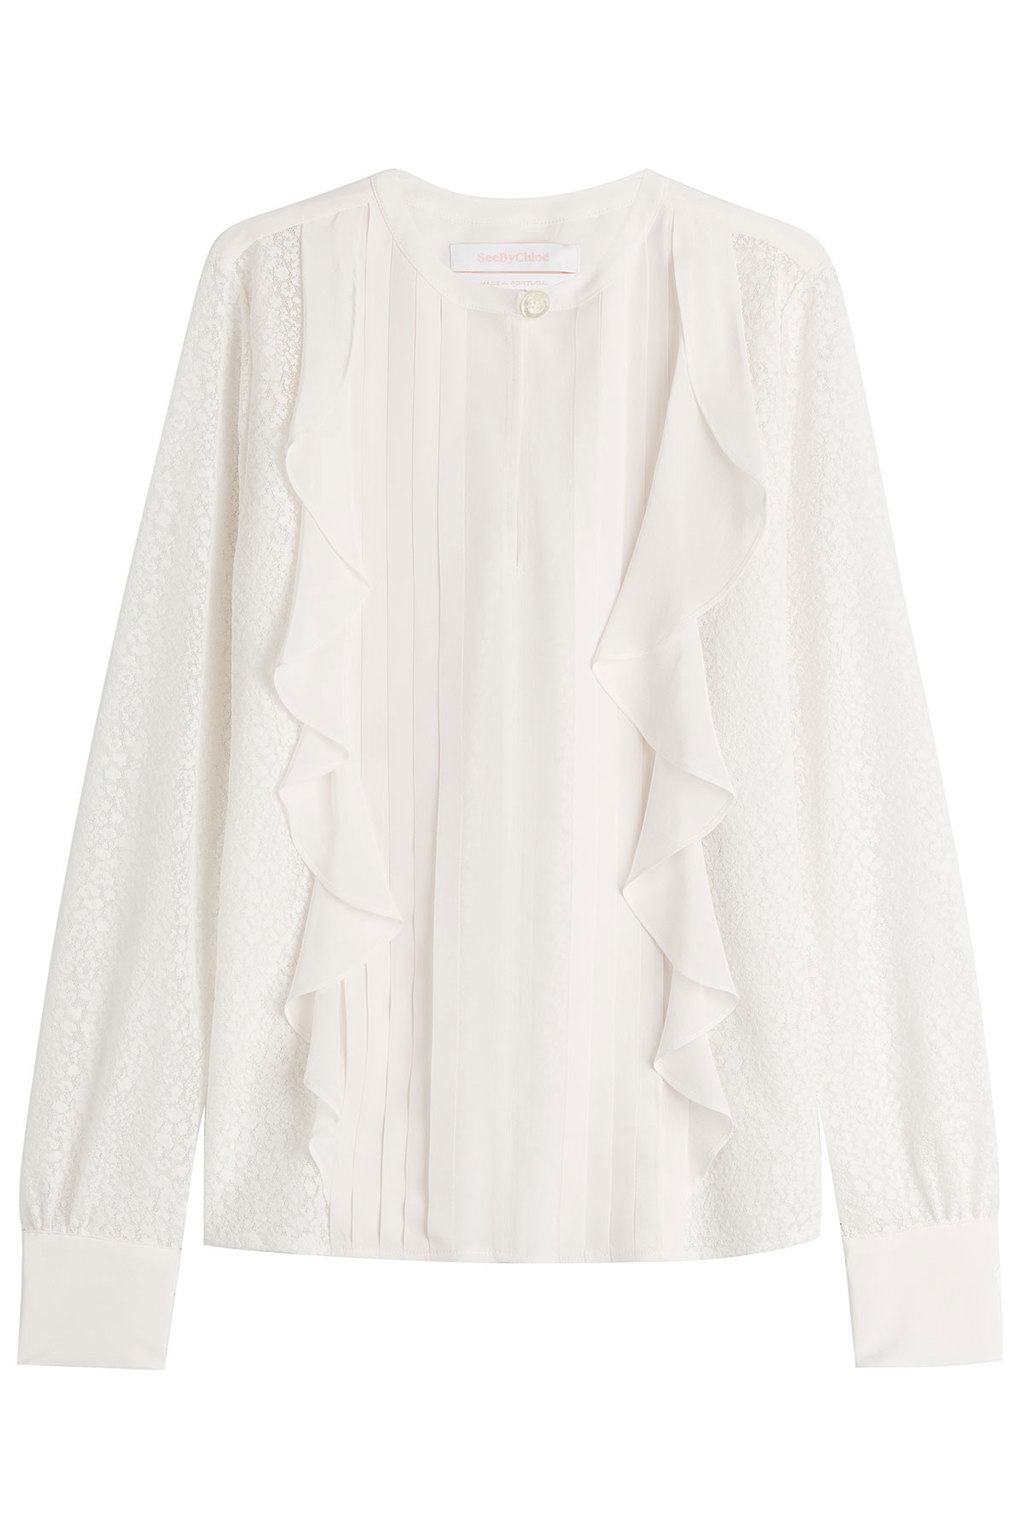 Ruffled Blouse With S Ilk - neckline: round neck; pattern: plain; style: blouse; predominant colour: white; occasions: work, occasion; length: standard; fibres: silk - mix; fit: body skimming; sleeve length: long sleeve; sleeve style: standard; texture group: silky - light; bust detail: bulky details at bust; pattern type: fabric; season: s/s 2016; wardrobe: highlight